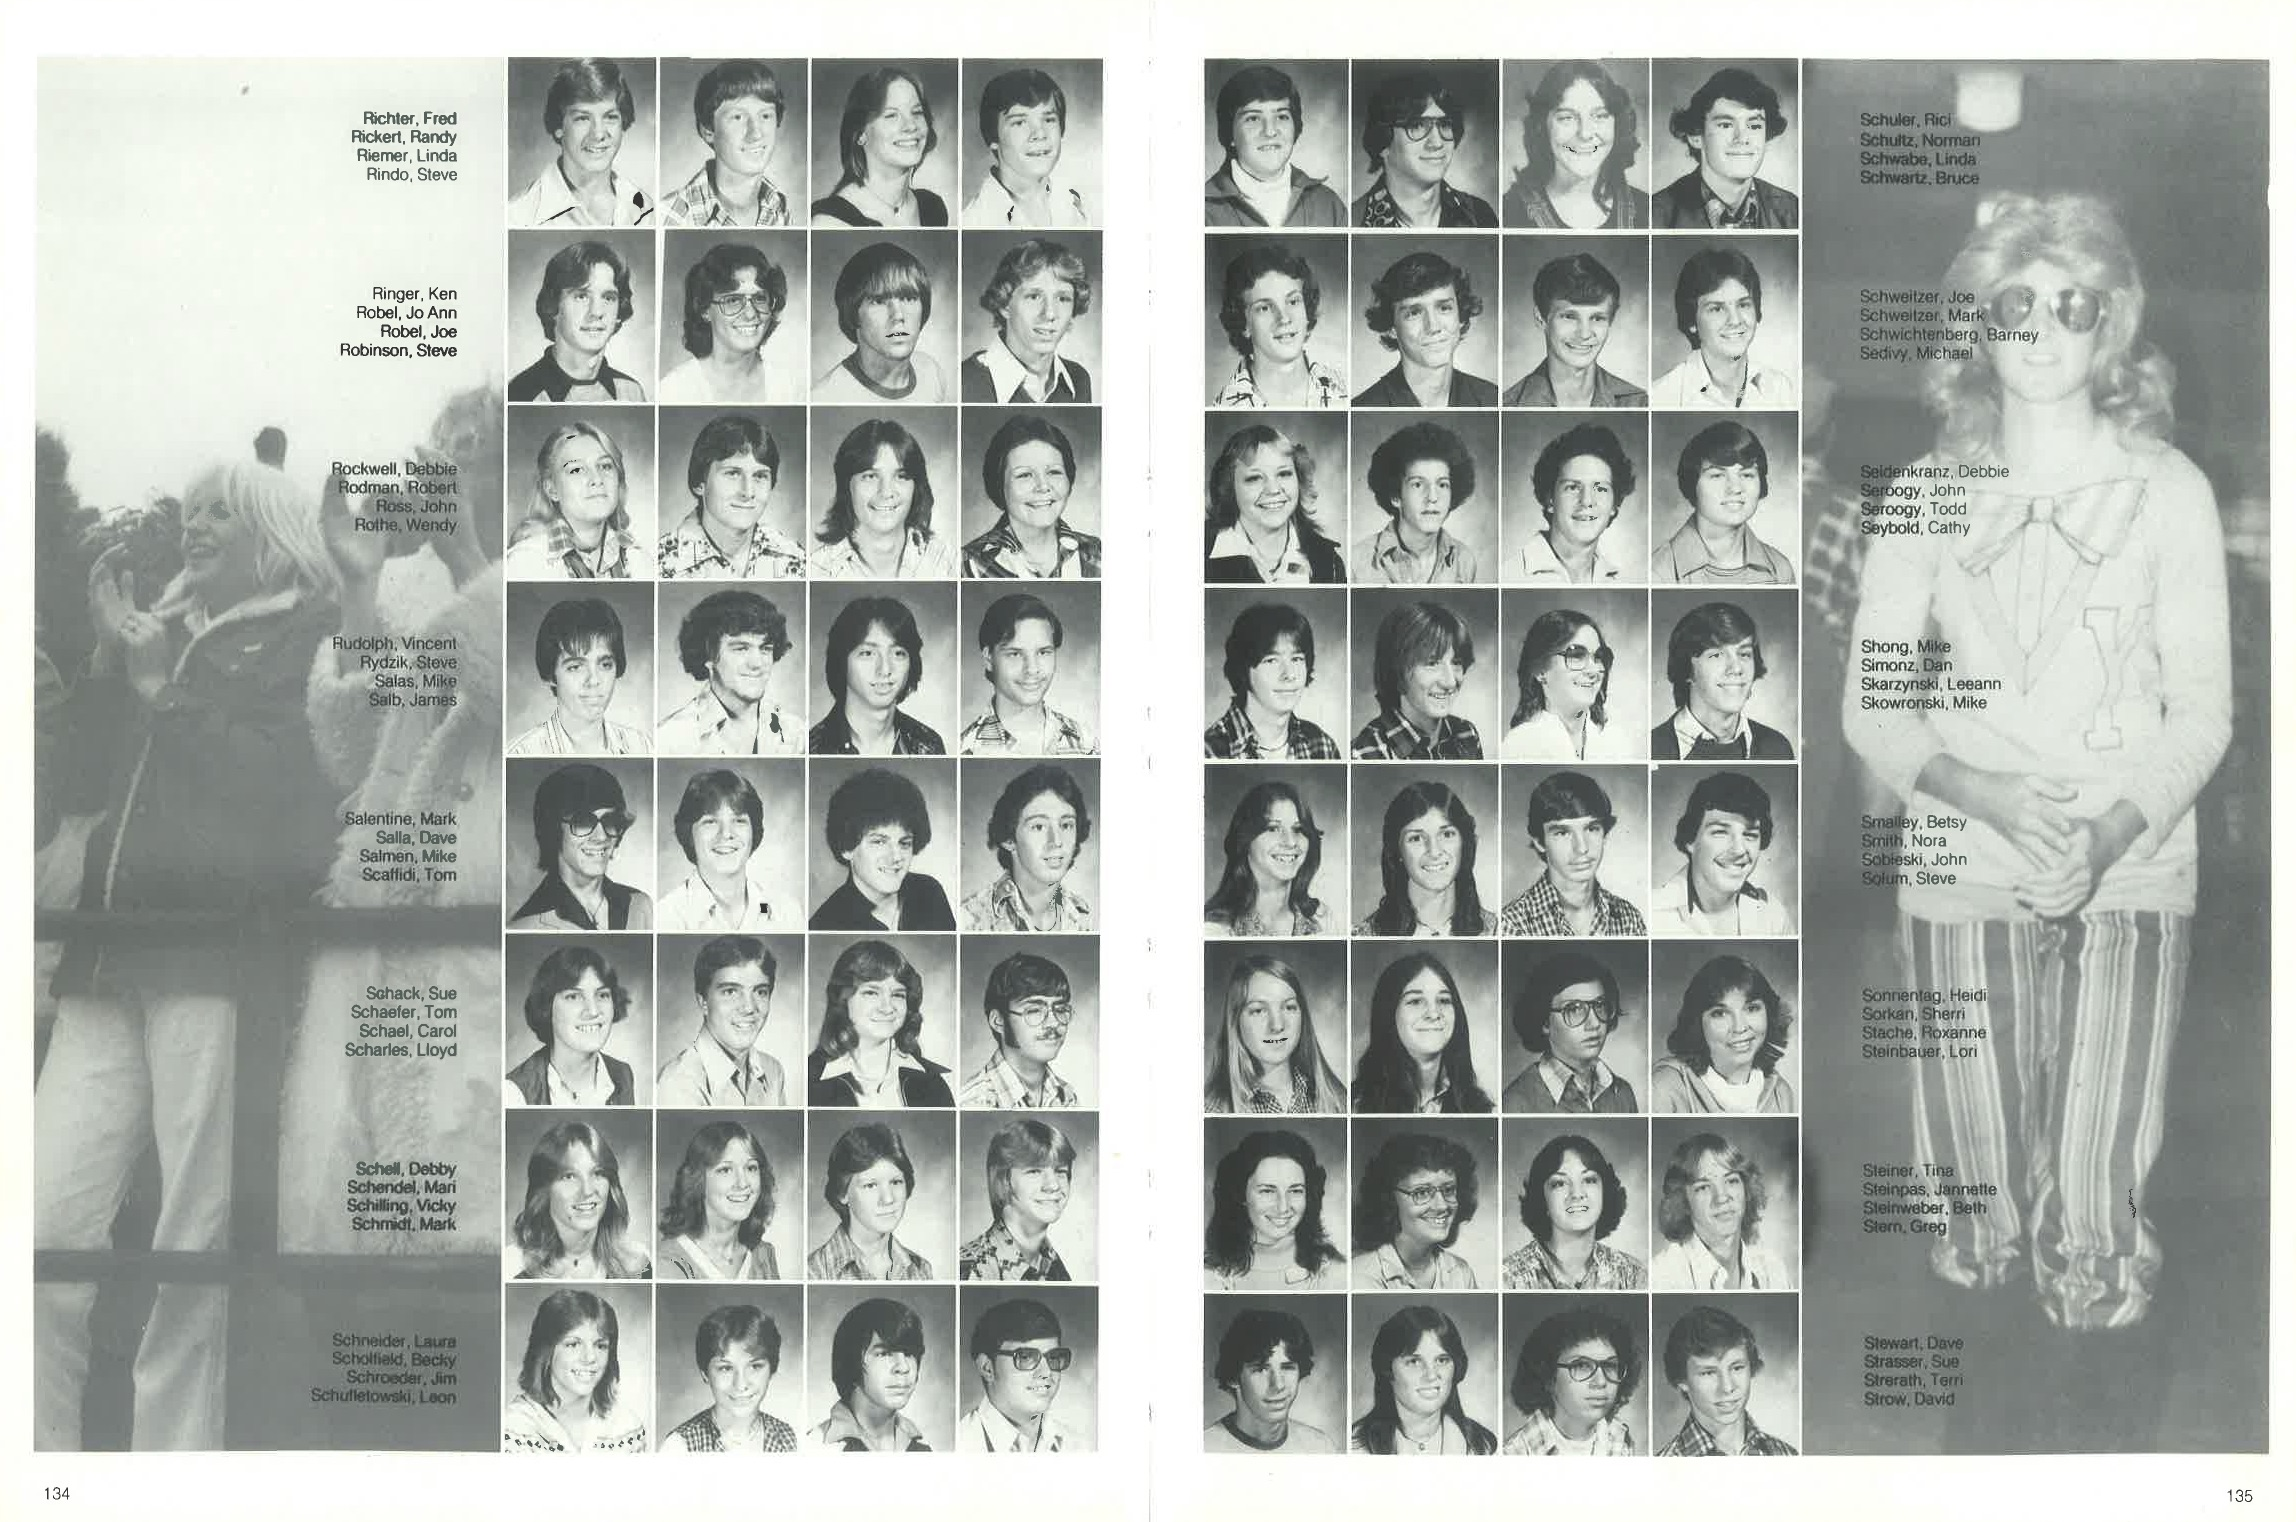 1979_Yearbook_126.jpg